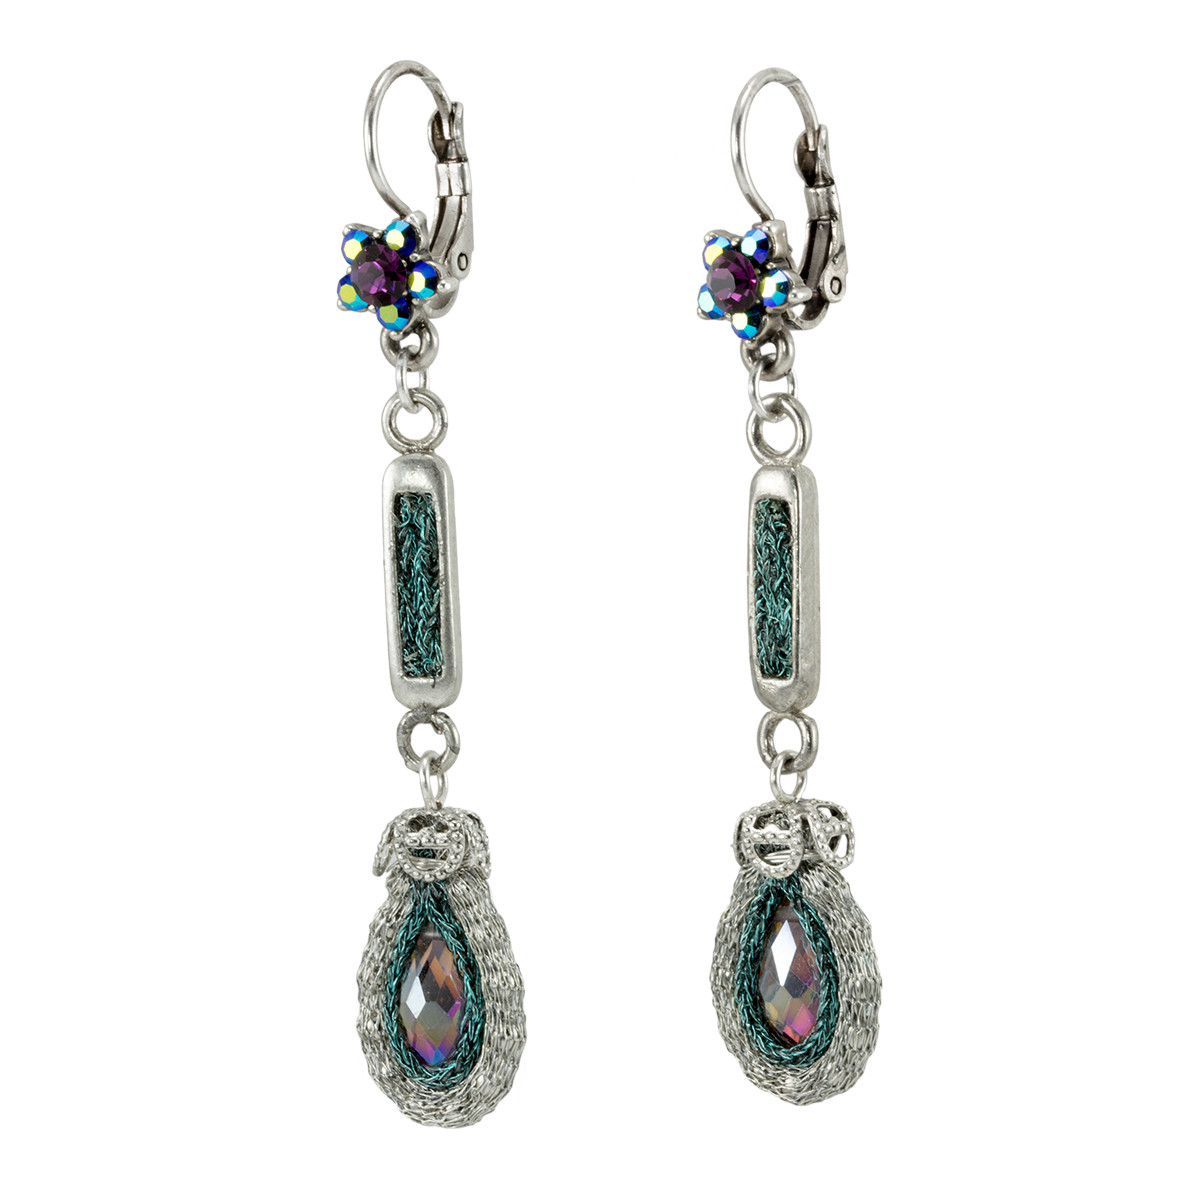 Anat Jewelry Teal with Flower Nouveau Glam Earrings